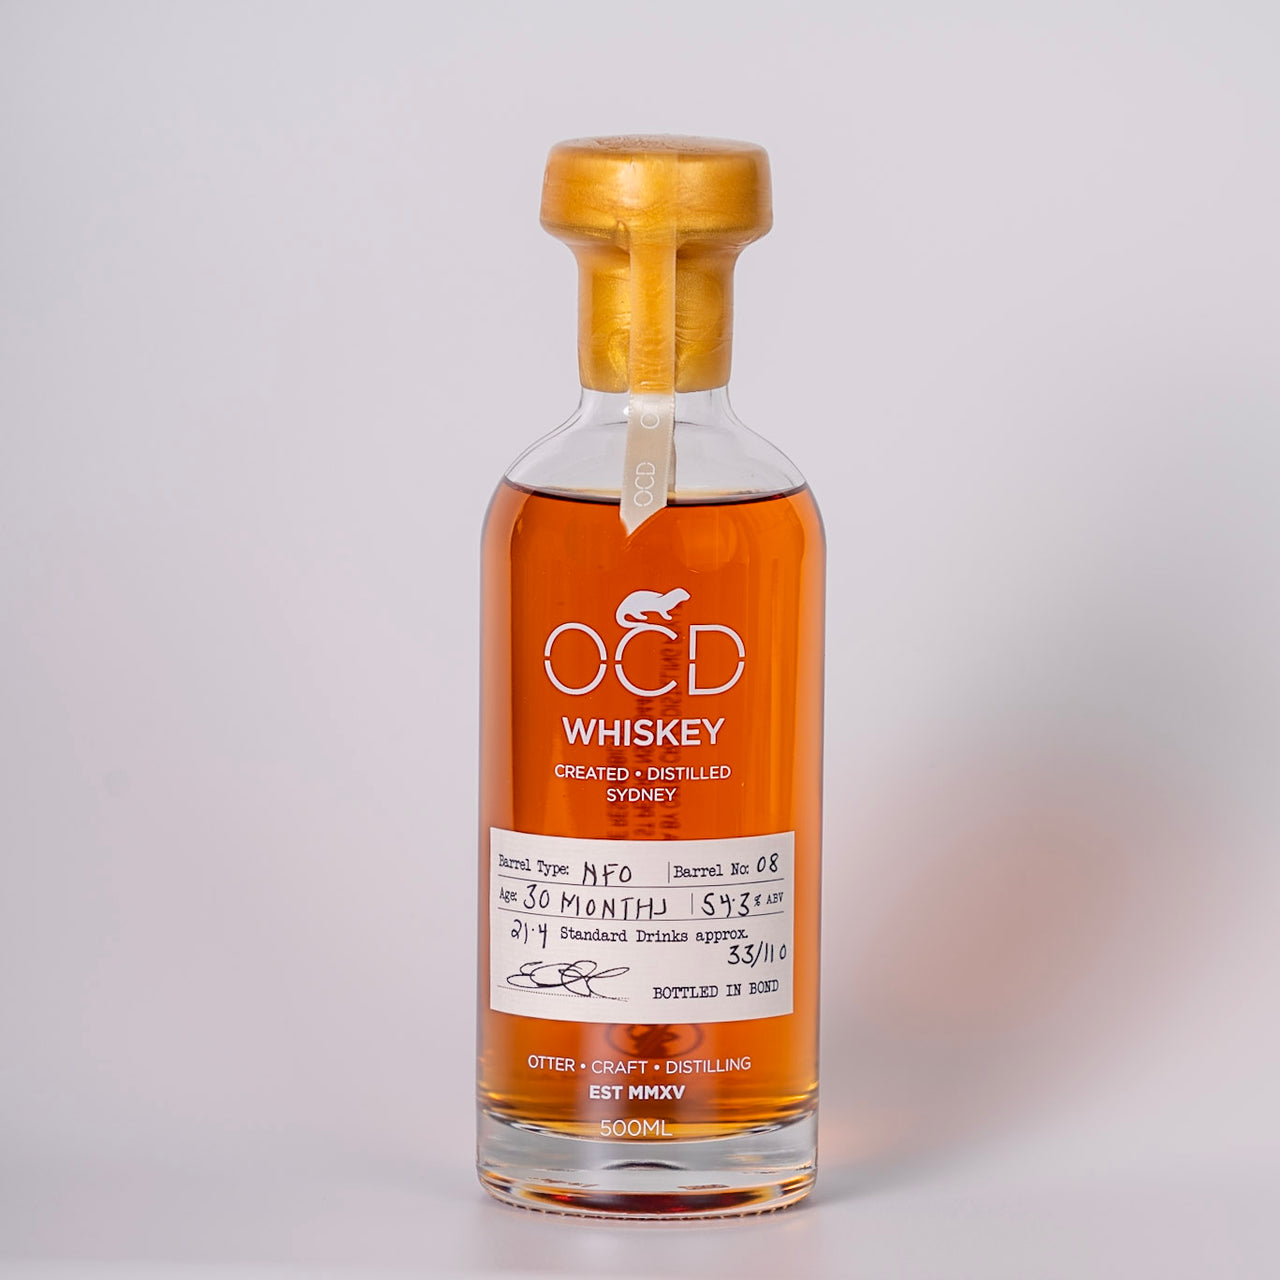 OCD Whiskey Limited Edition: Barrel 08 New French Oak